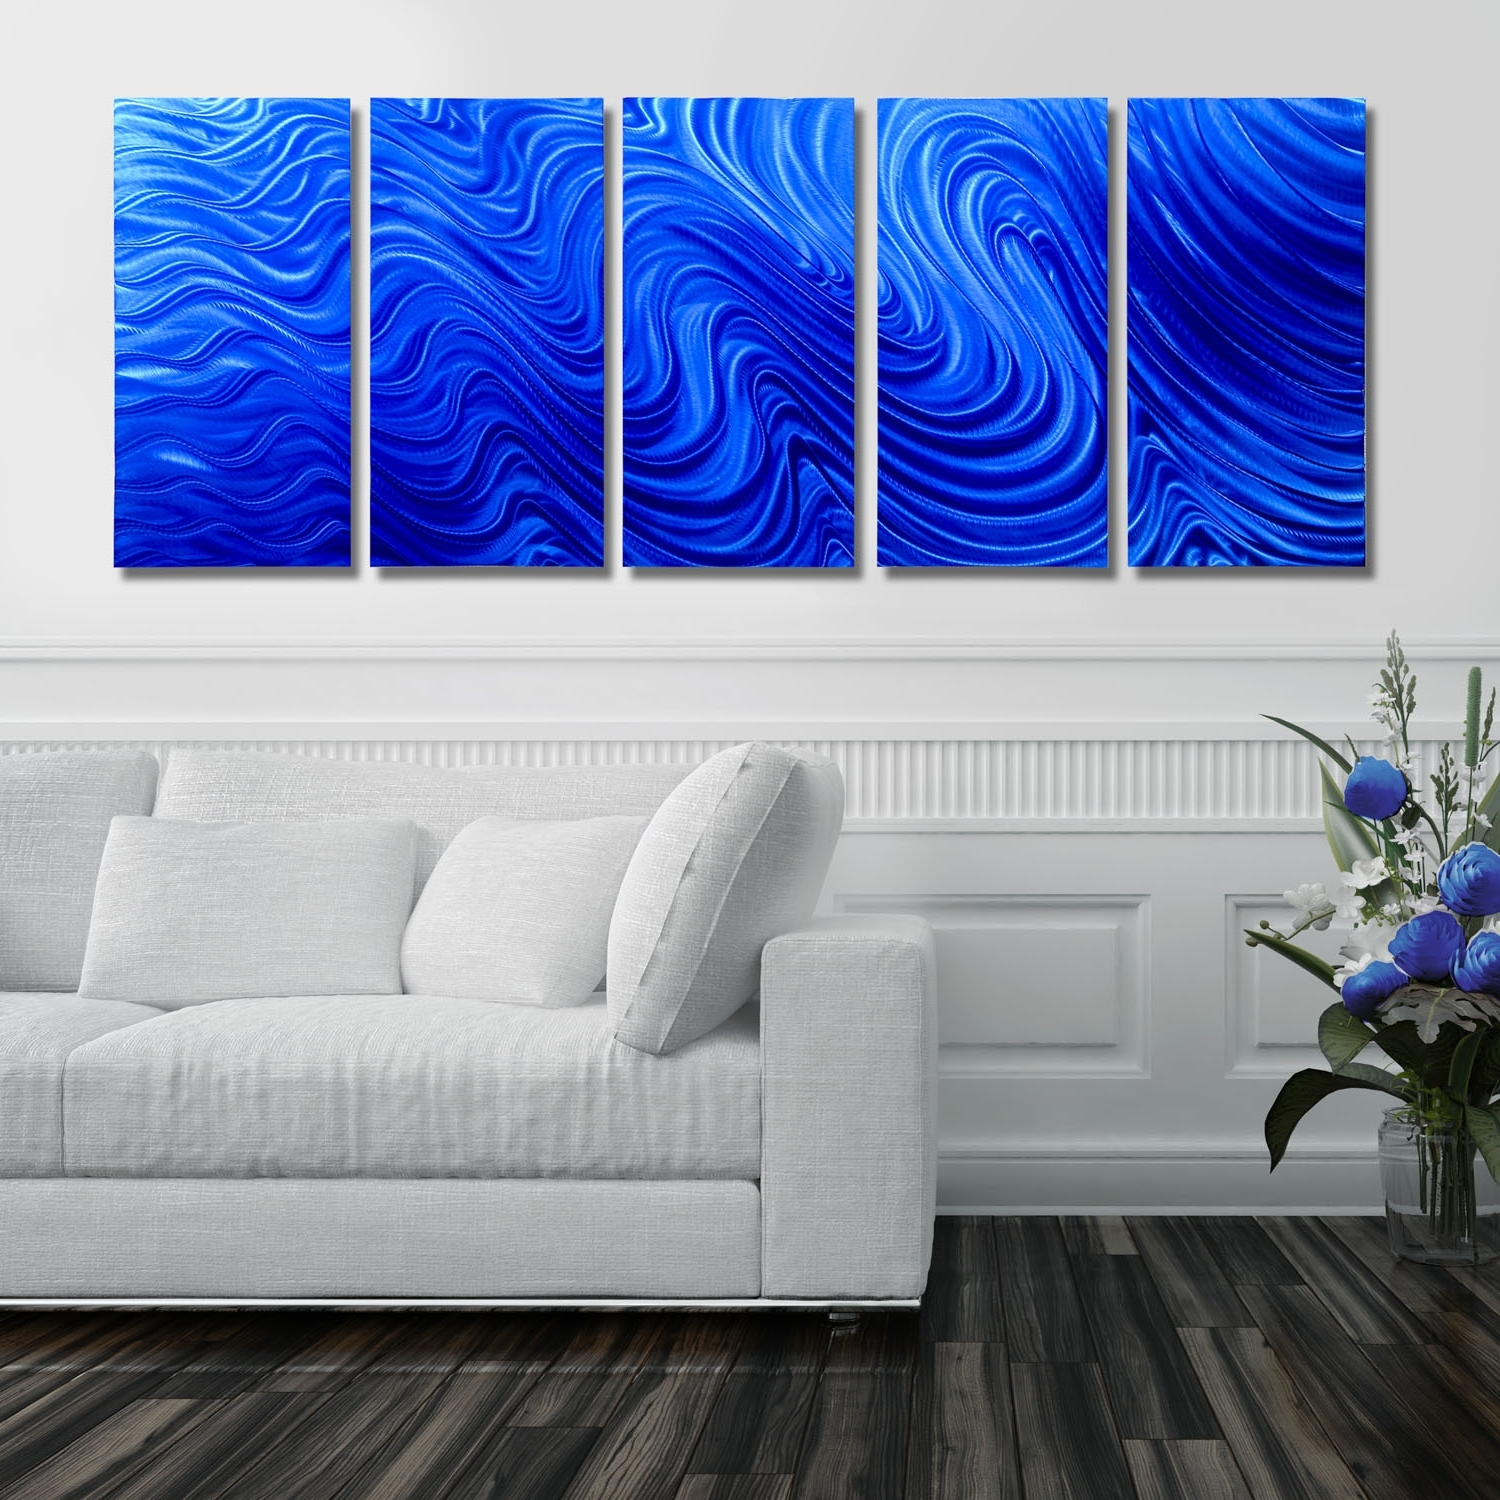 Blue Hypnotic Sands – Blue Four Panel Abstract Metal Wall Art With Widely Used Abstract Metal Wall Art Panels (View 4 of 15)